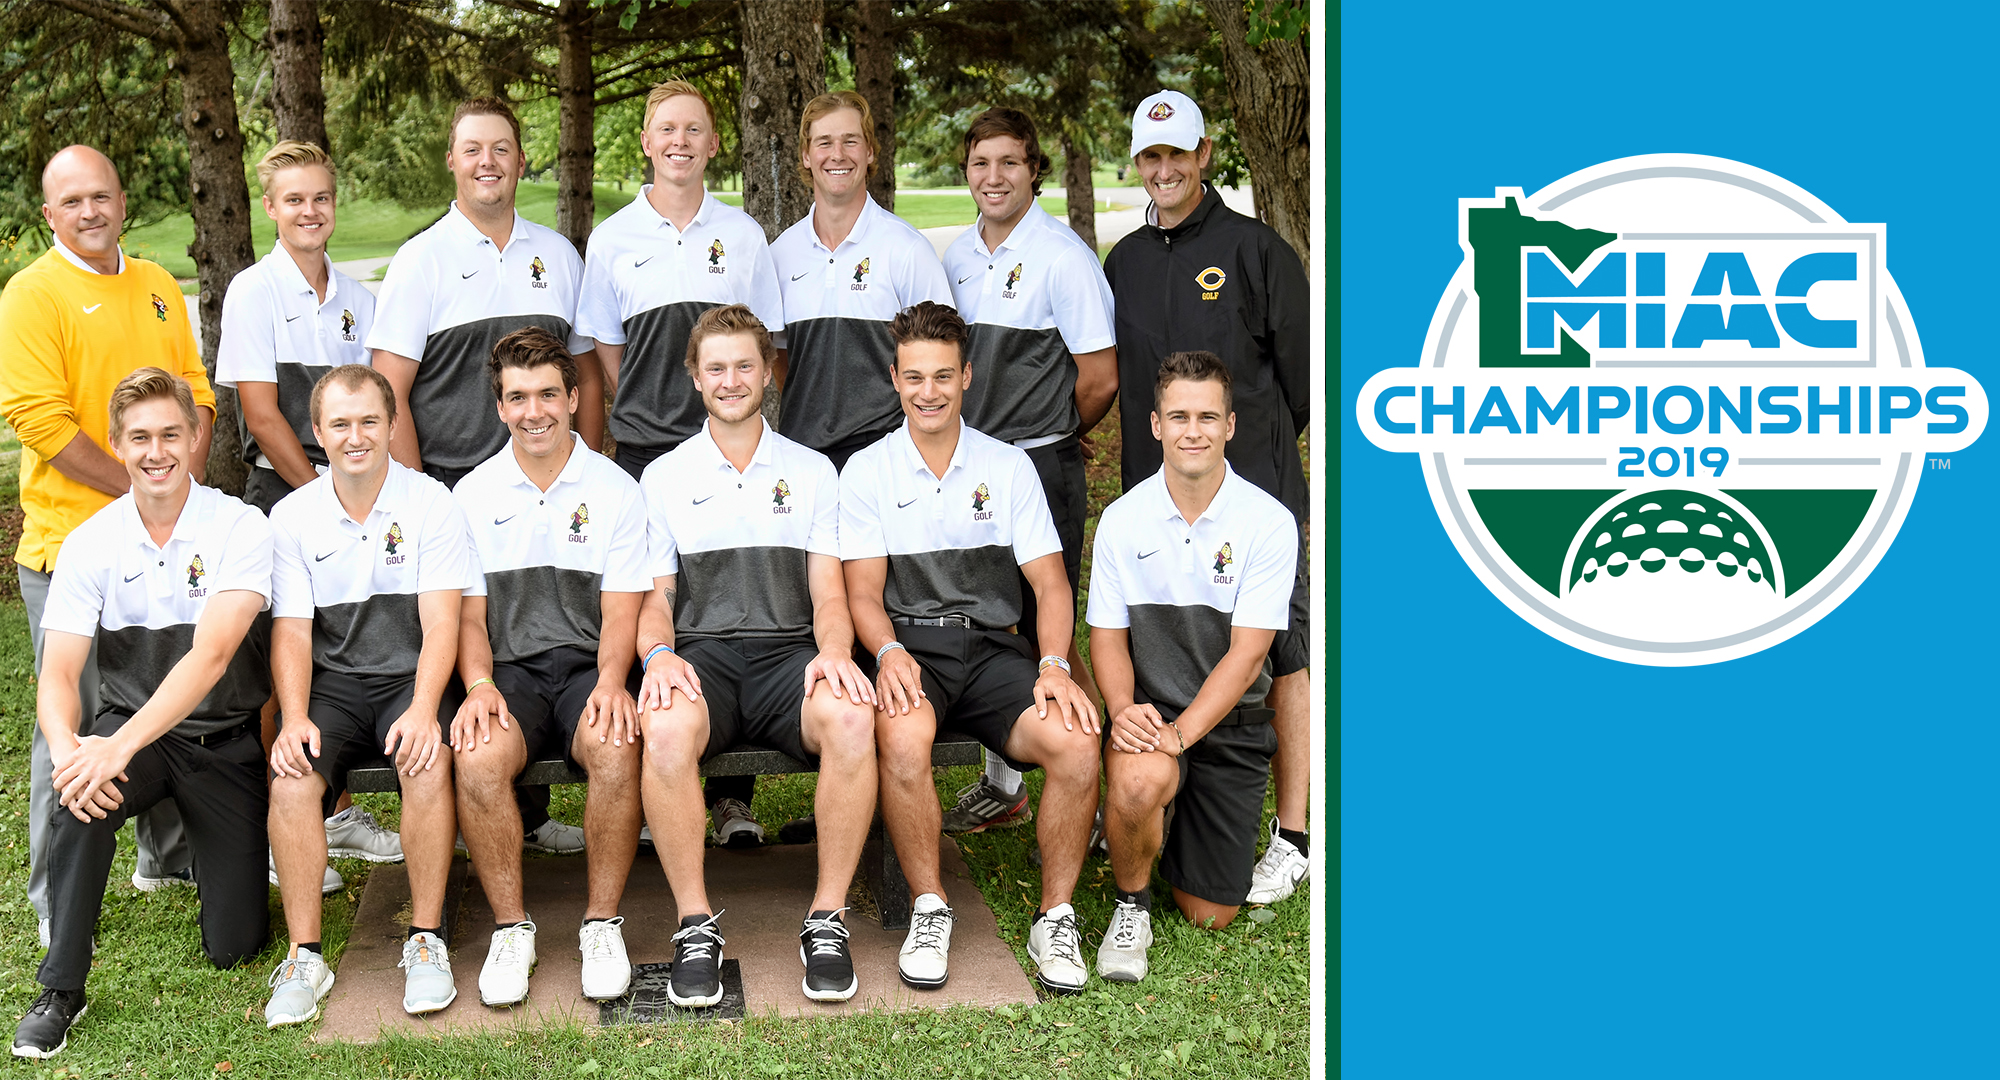 The Cobber men's golf team finished fifth at the MIAC Championship Meet.